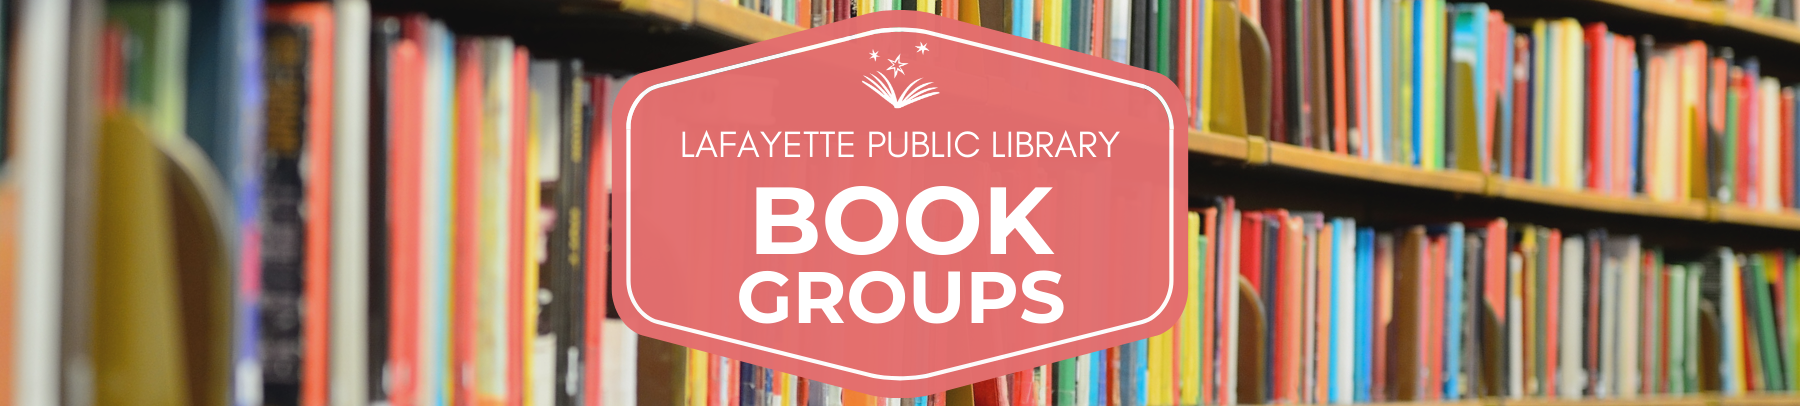 Library Book Groups Page